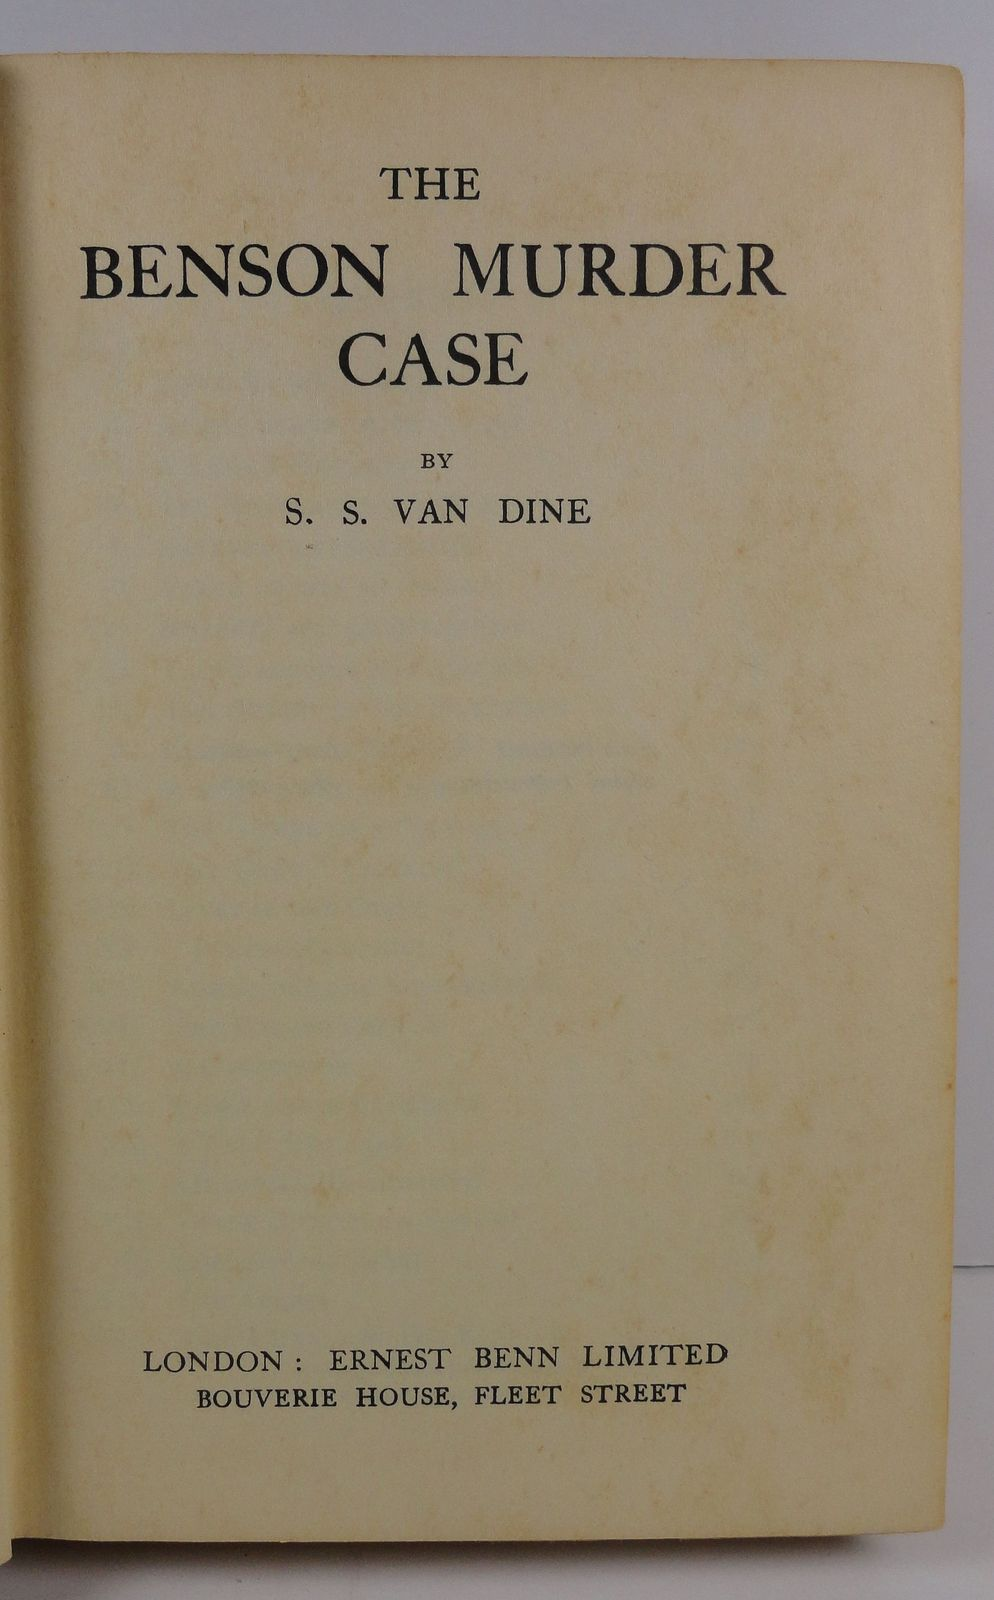 The Benson Murder Case by S. S. Van Dine 1928